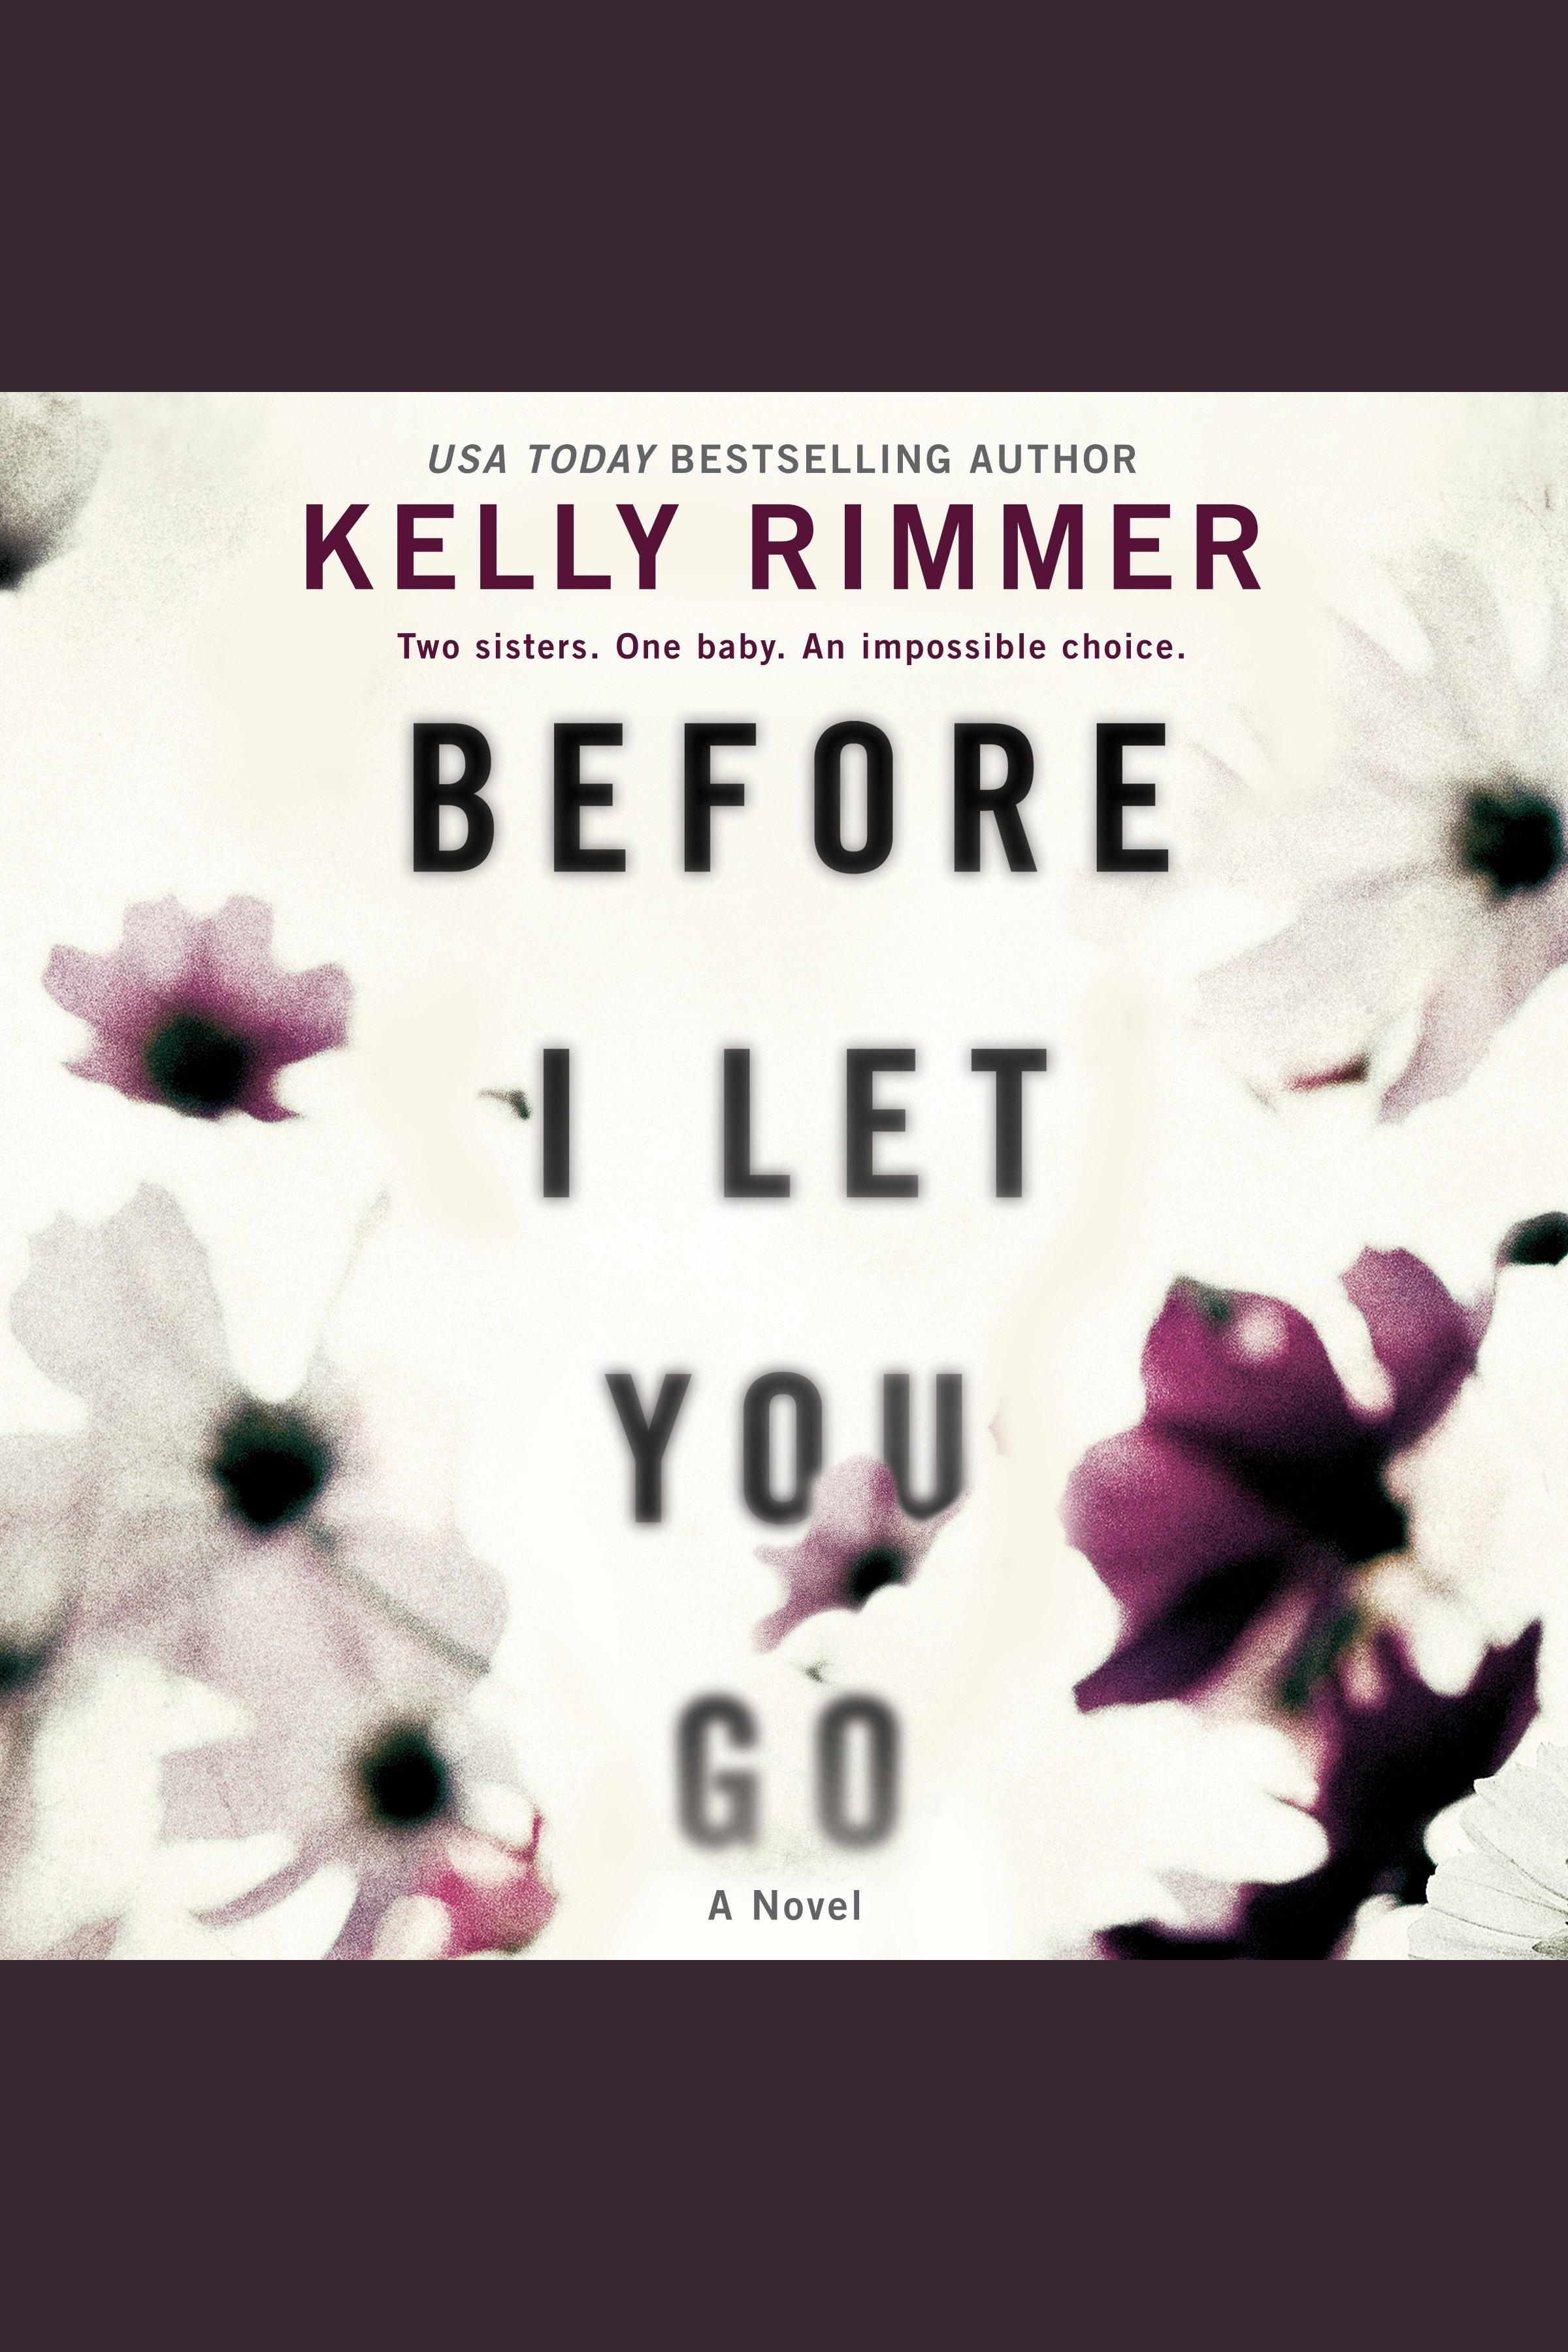 Before I let you go [AudioEbook]